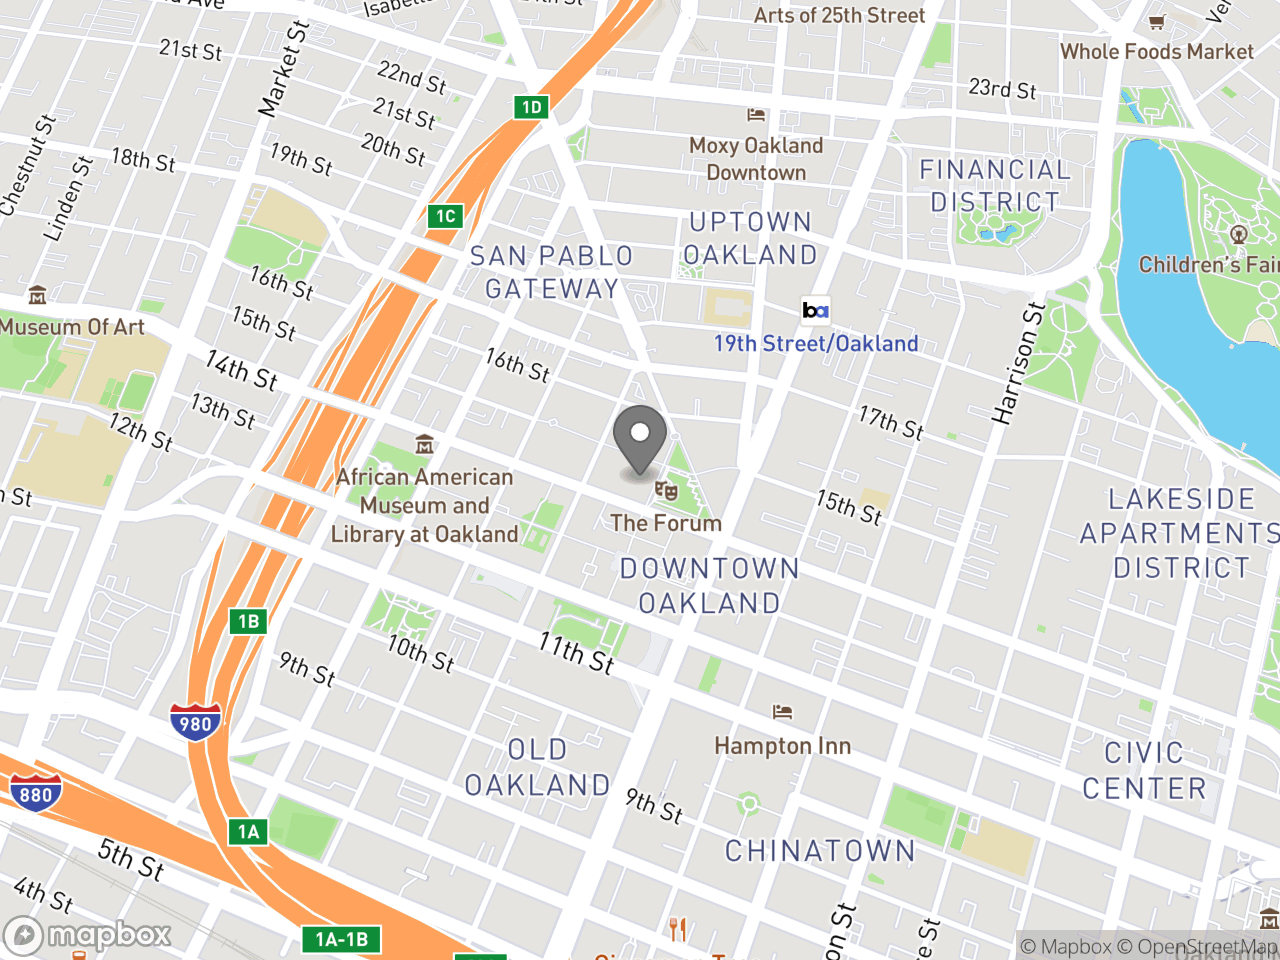 Map image for July 8, 2019 Landmarks Preservation Advisory Board Meeting, located at 1 Frank H Ogawa Plaza in Oakland, CA 94612